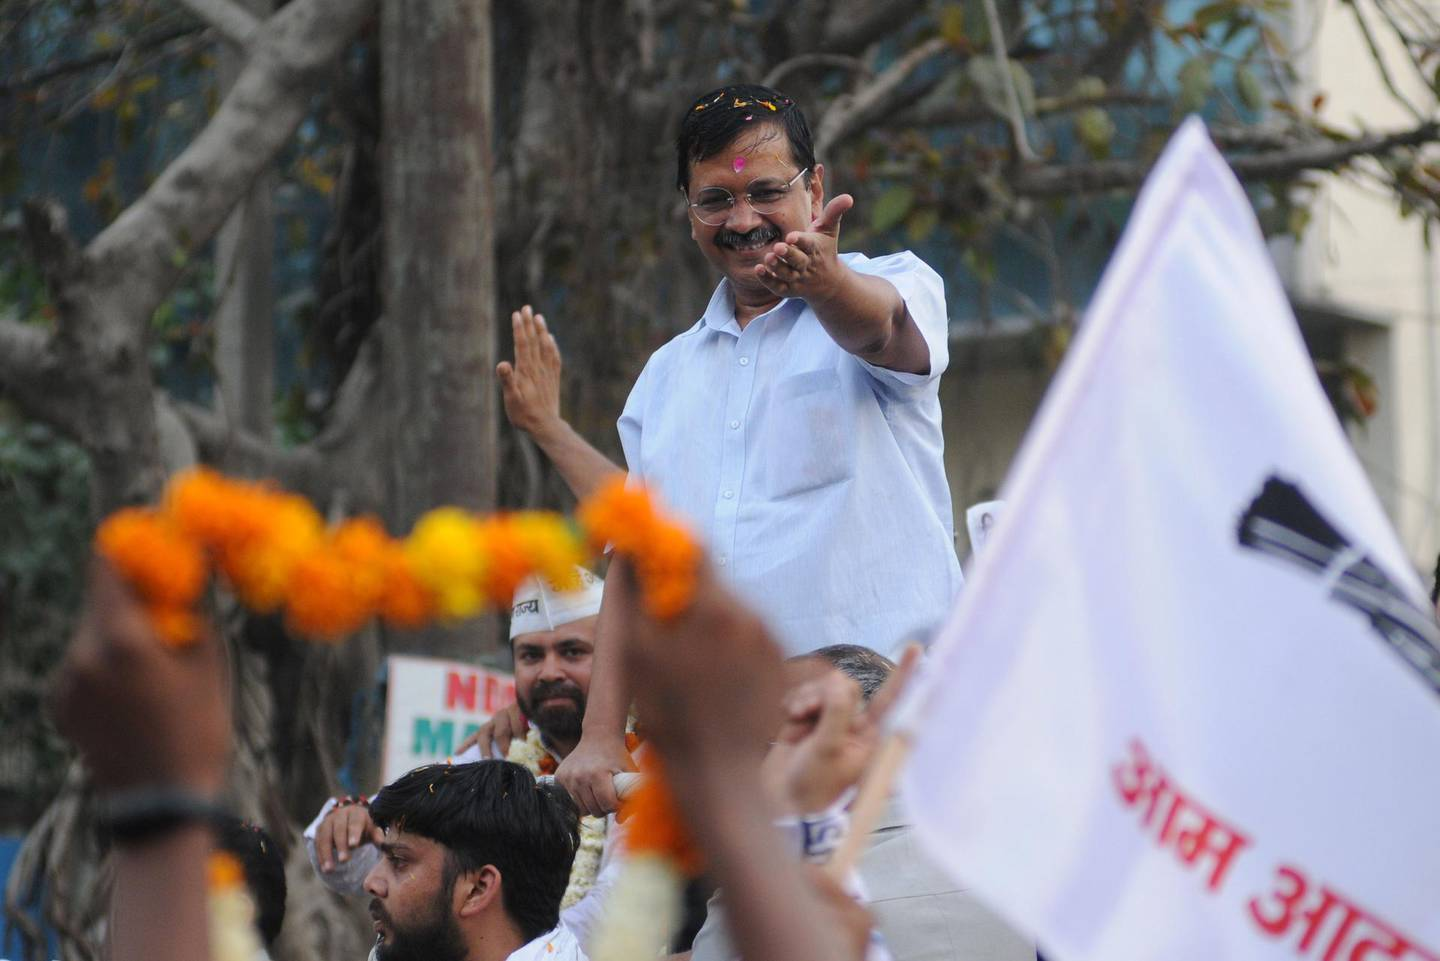 epa07540482 Aam Aadmi Party chief and Delhi Chief minister Arvind Kejriwal (C), gestures during an election campaign road show in New Delhi, India, 01 May 2019. Voting for the Parliamentary elections in Delhi will be held in a single phase on 12 May 2019. The parliamentary elections, which began on 11 April 2019, are to be conducted in seven phases throughout India and result will be announced on 23 May.  EPA/STR